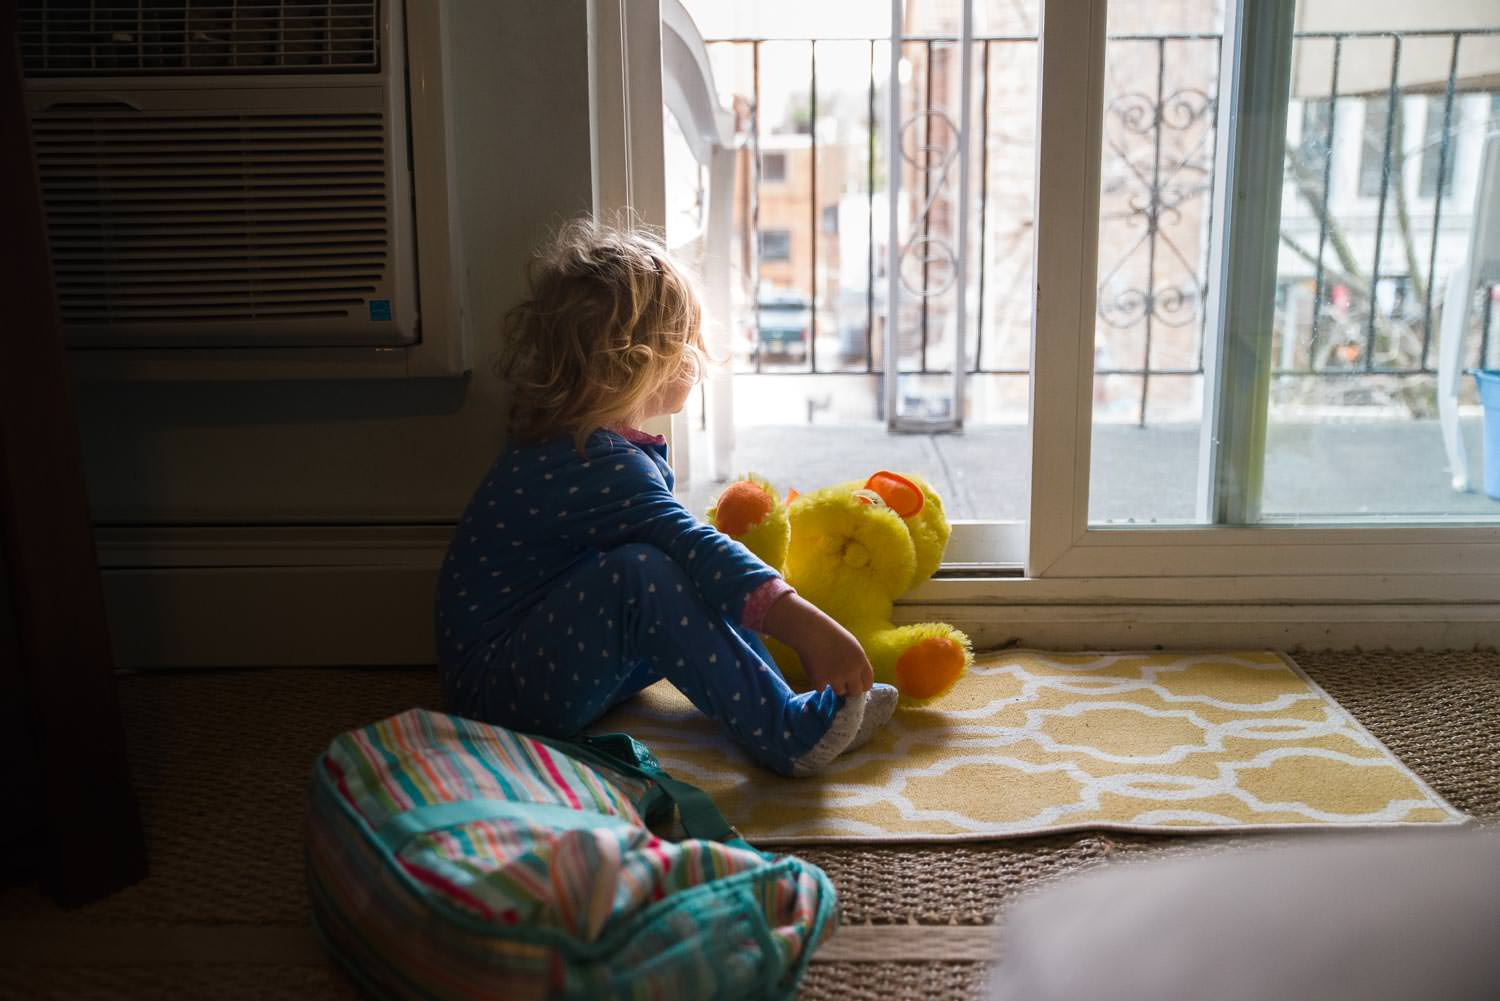 A little girl watches out the sliding glass door of her apartment.